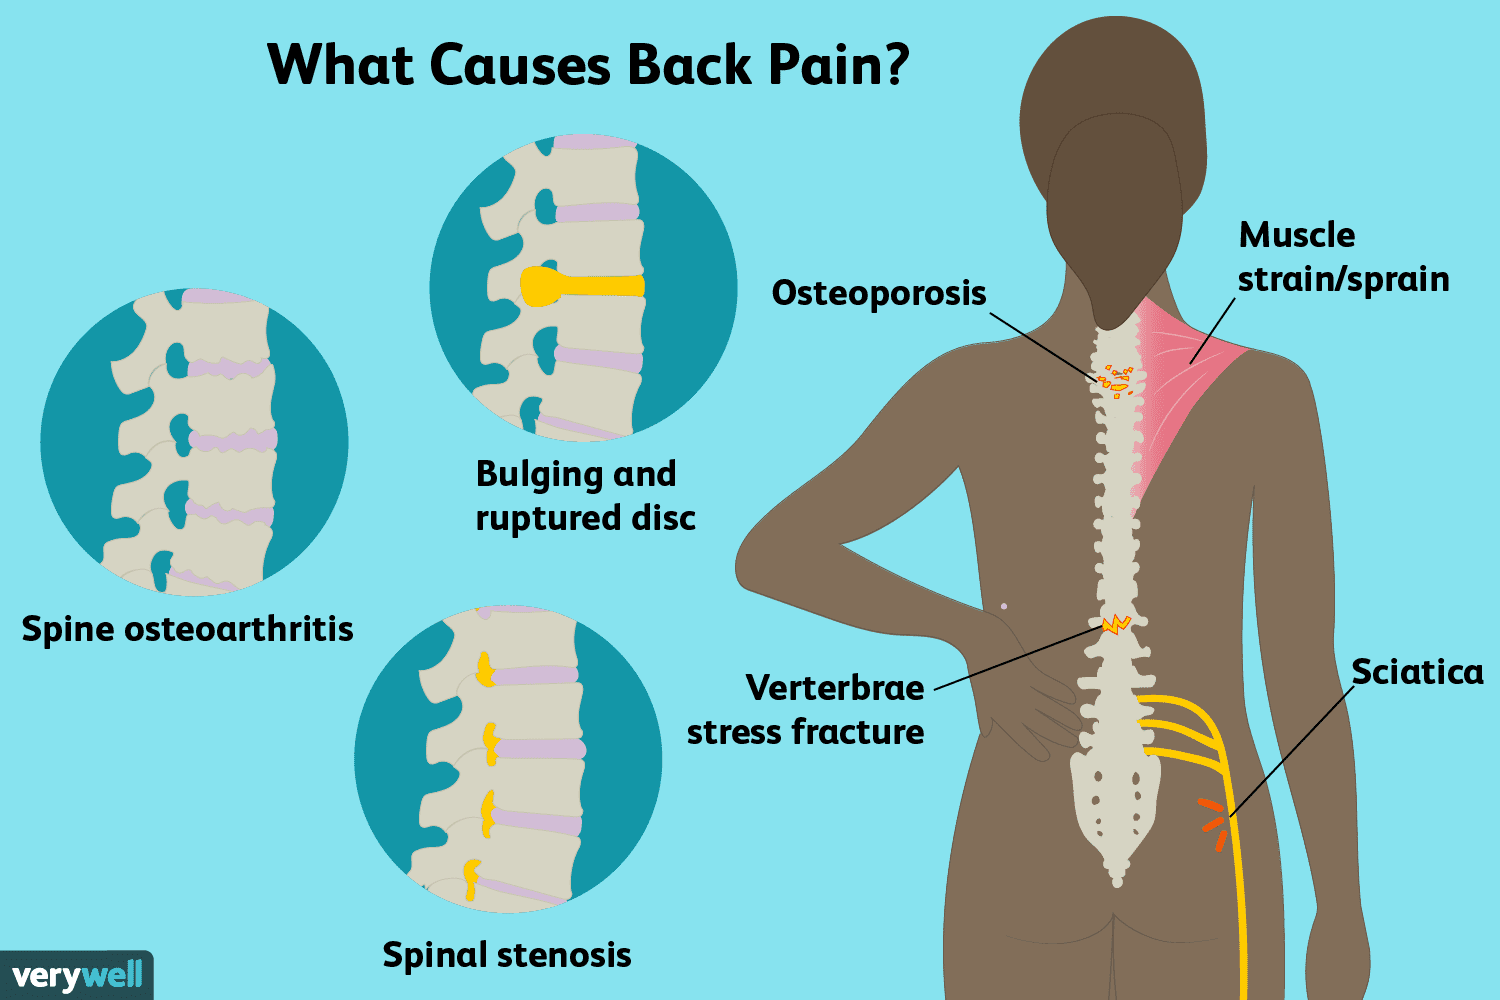 abdominal cancer back pain